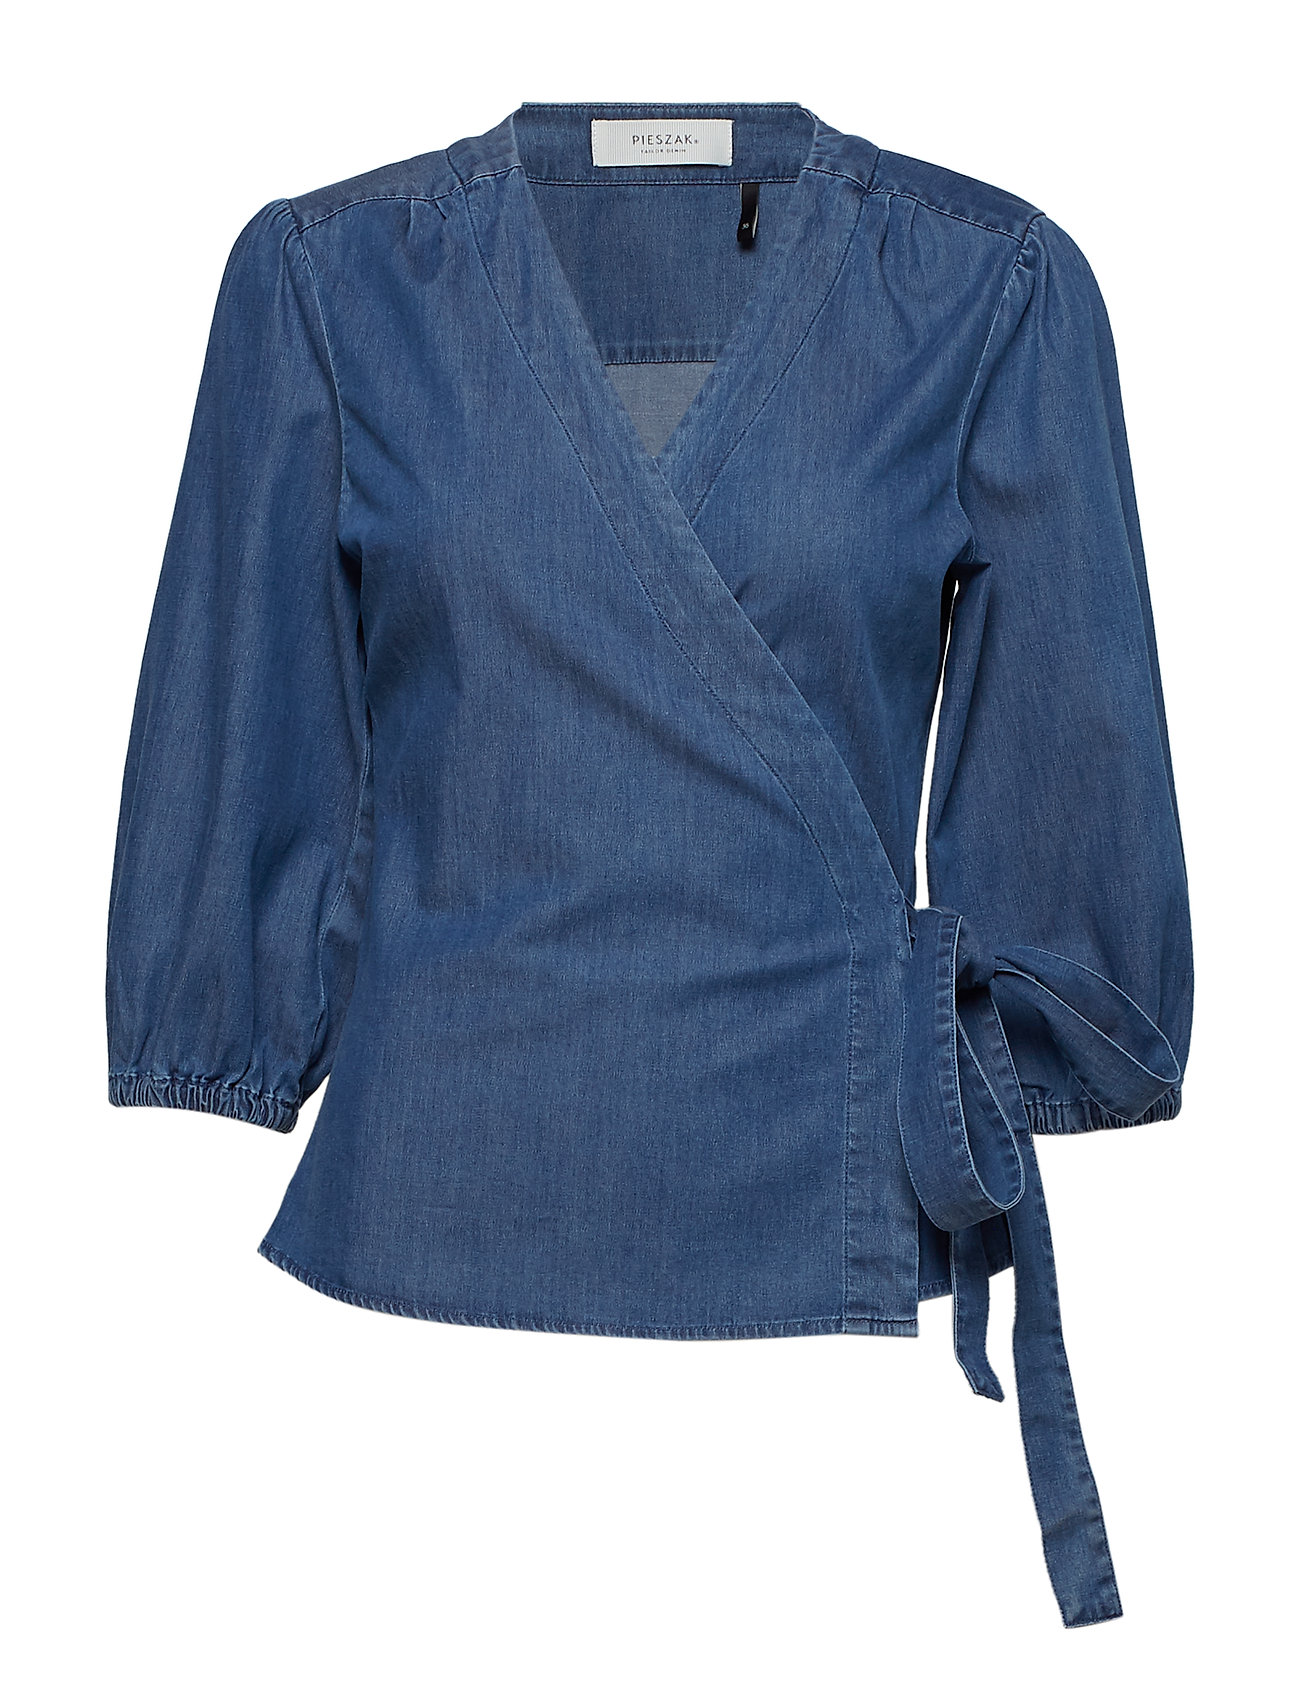 f9eddba70087cf Tilly Cross Over Blouse (Denim Blue) (£109) - Pieszak -